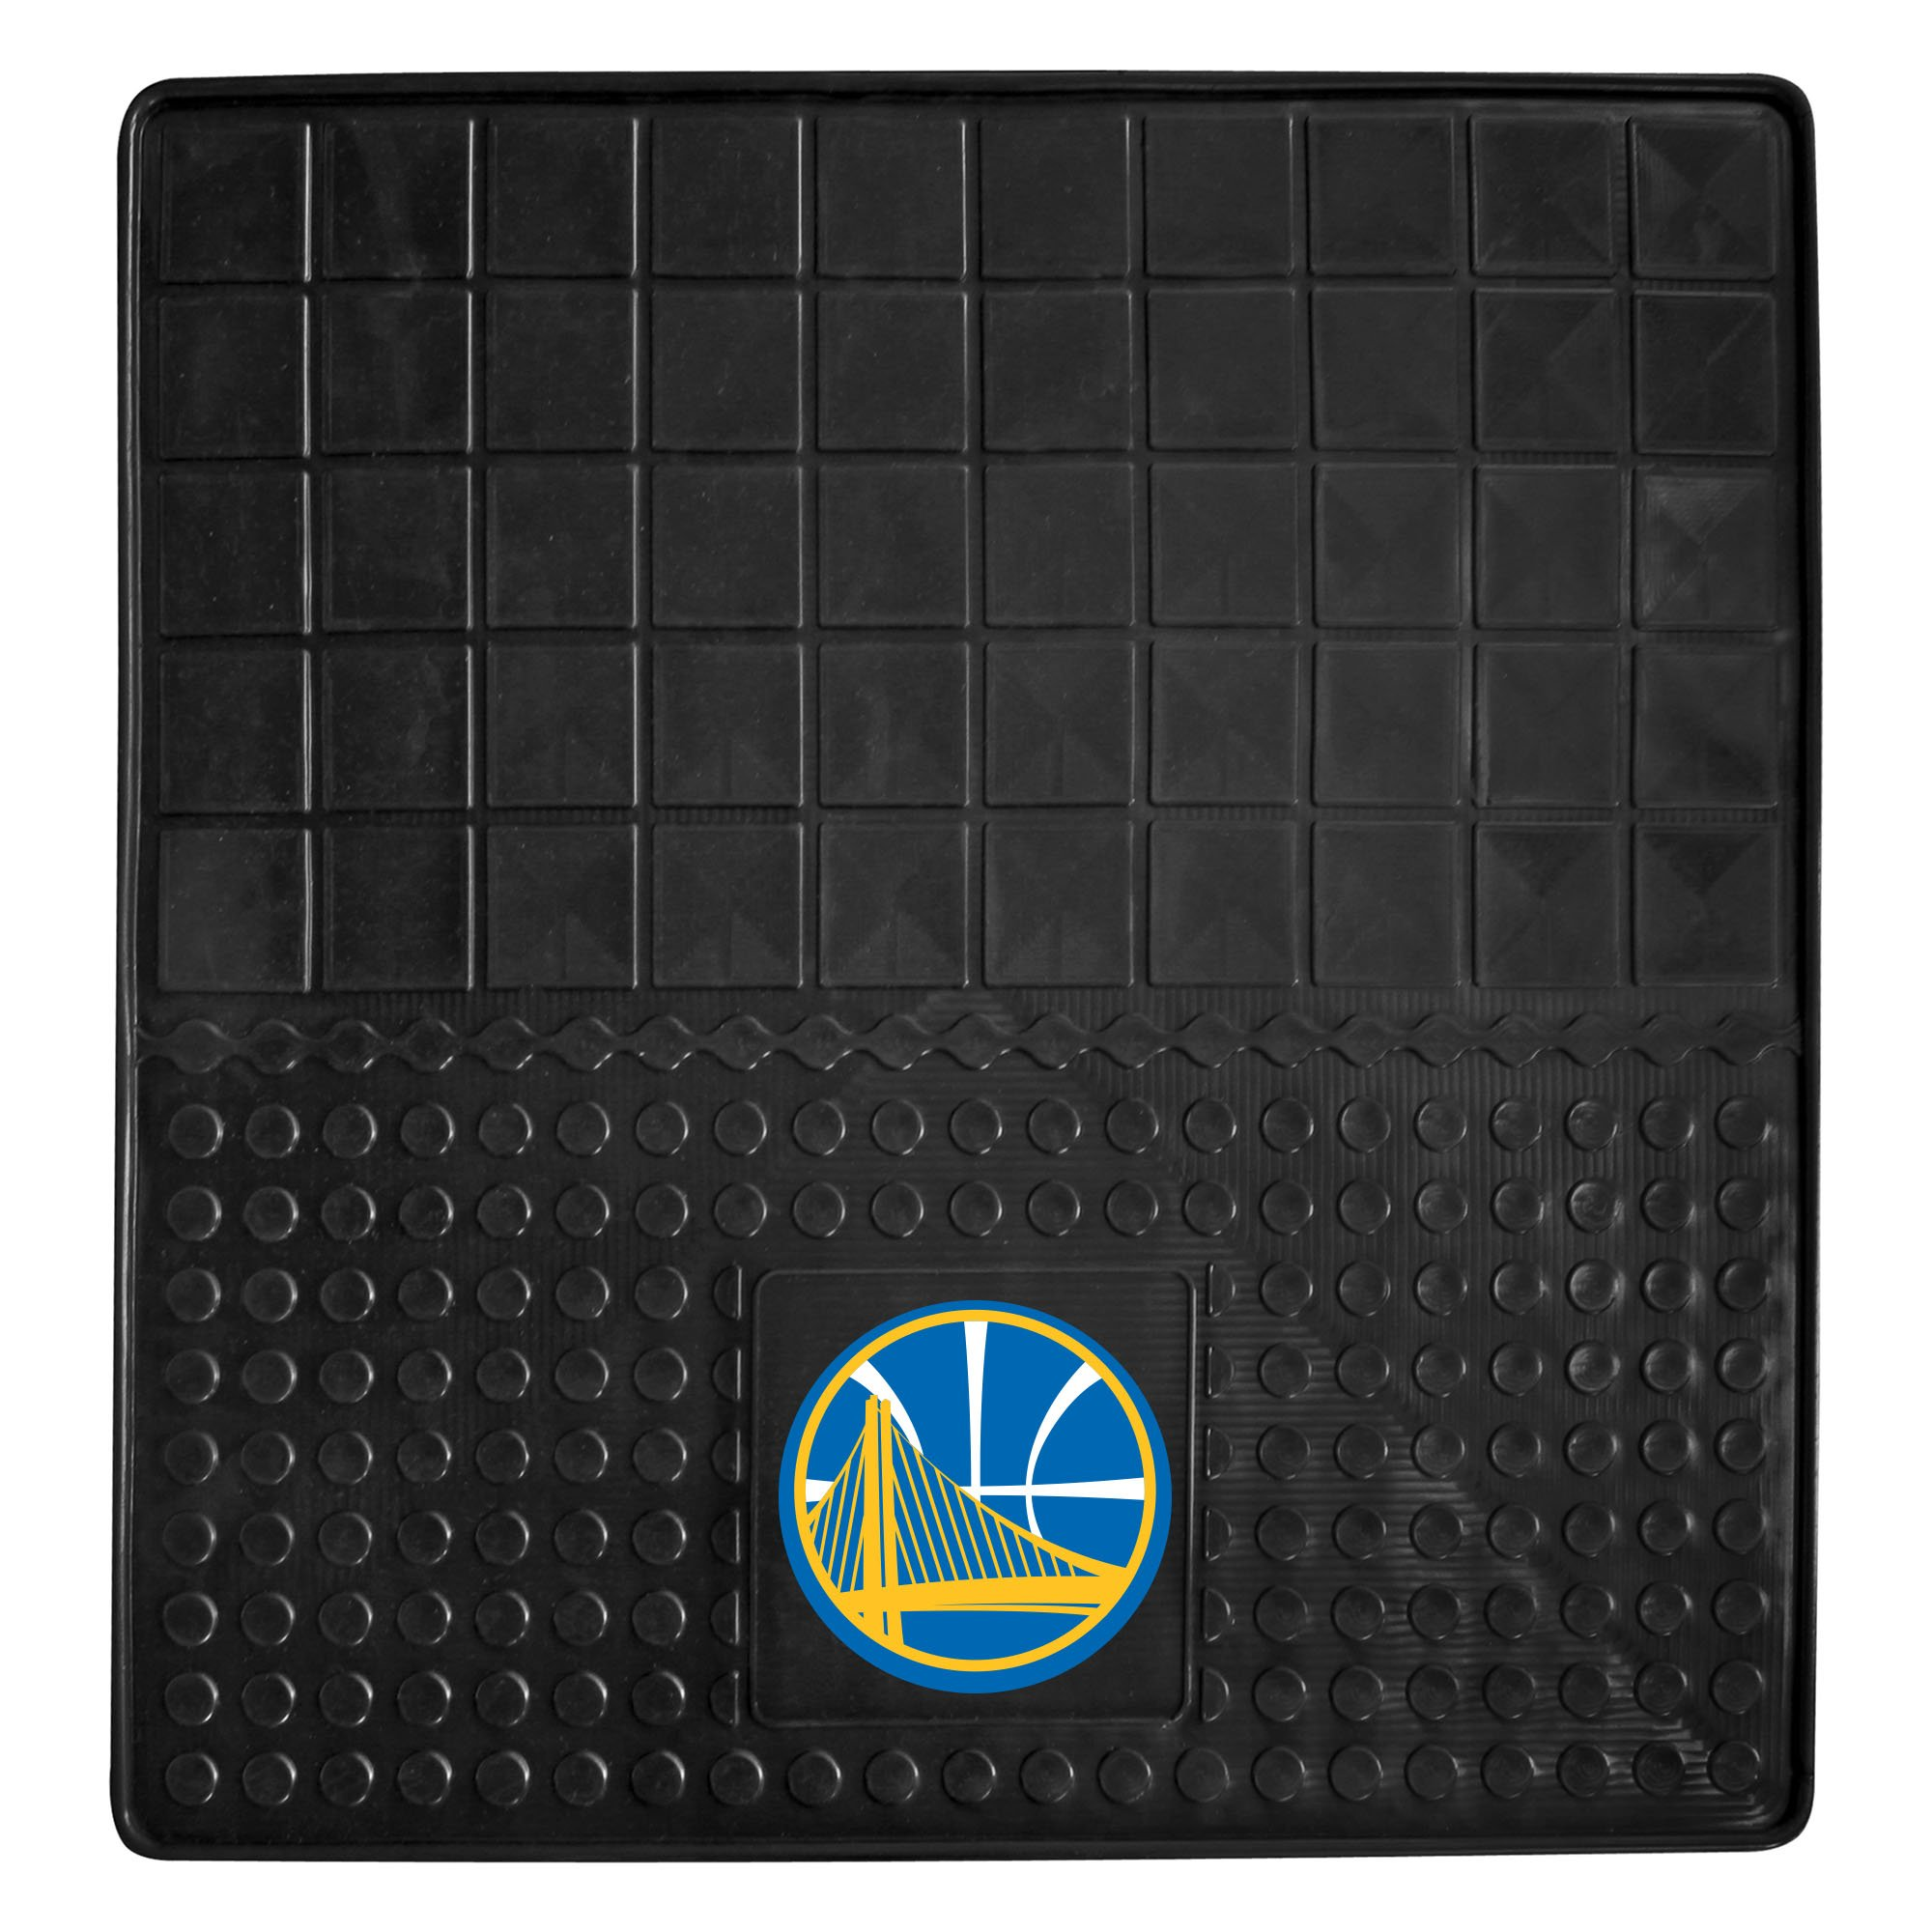 FANMATS 15377 NBA Golden State Warriors Motorcycle Mat